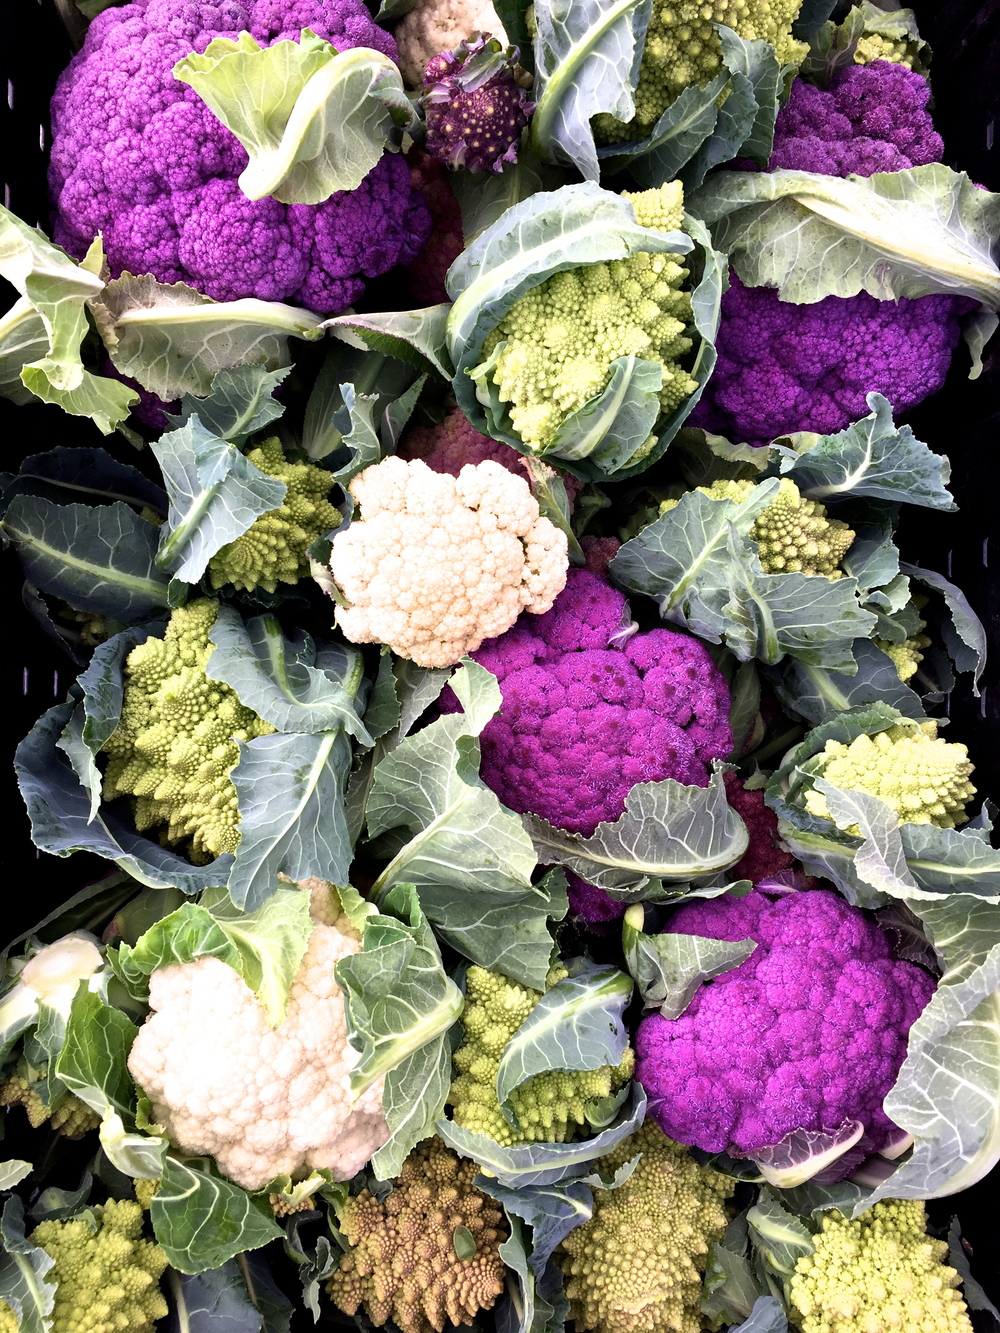 an array of cauliflowers and romanescos harvested for our CSA / farmer's market sales last tuesday